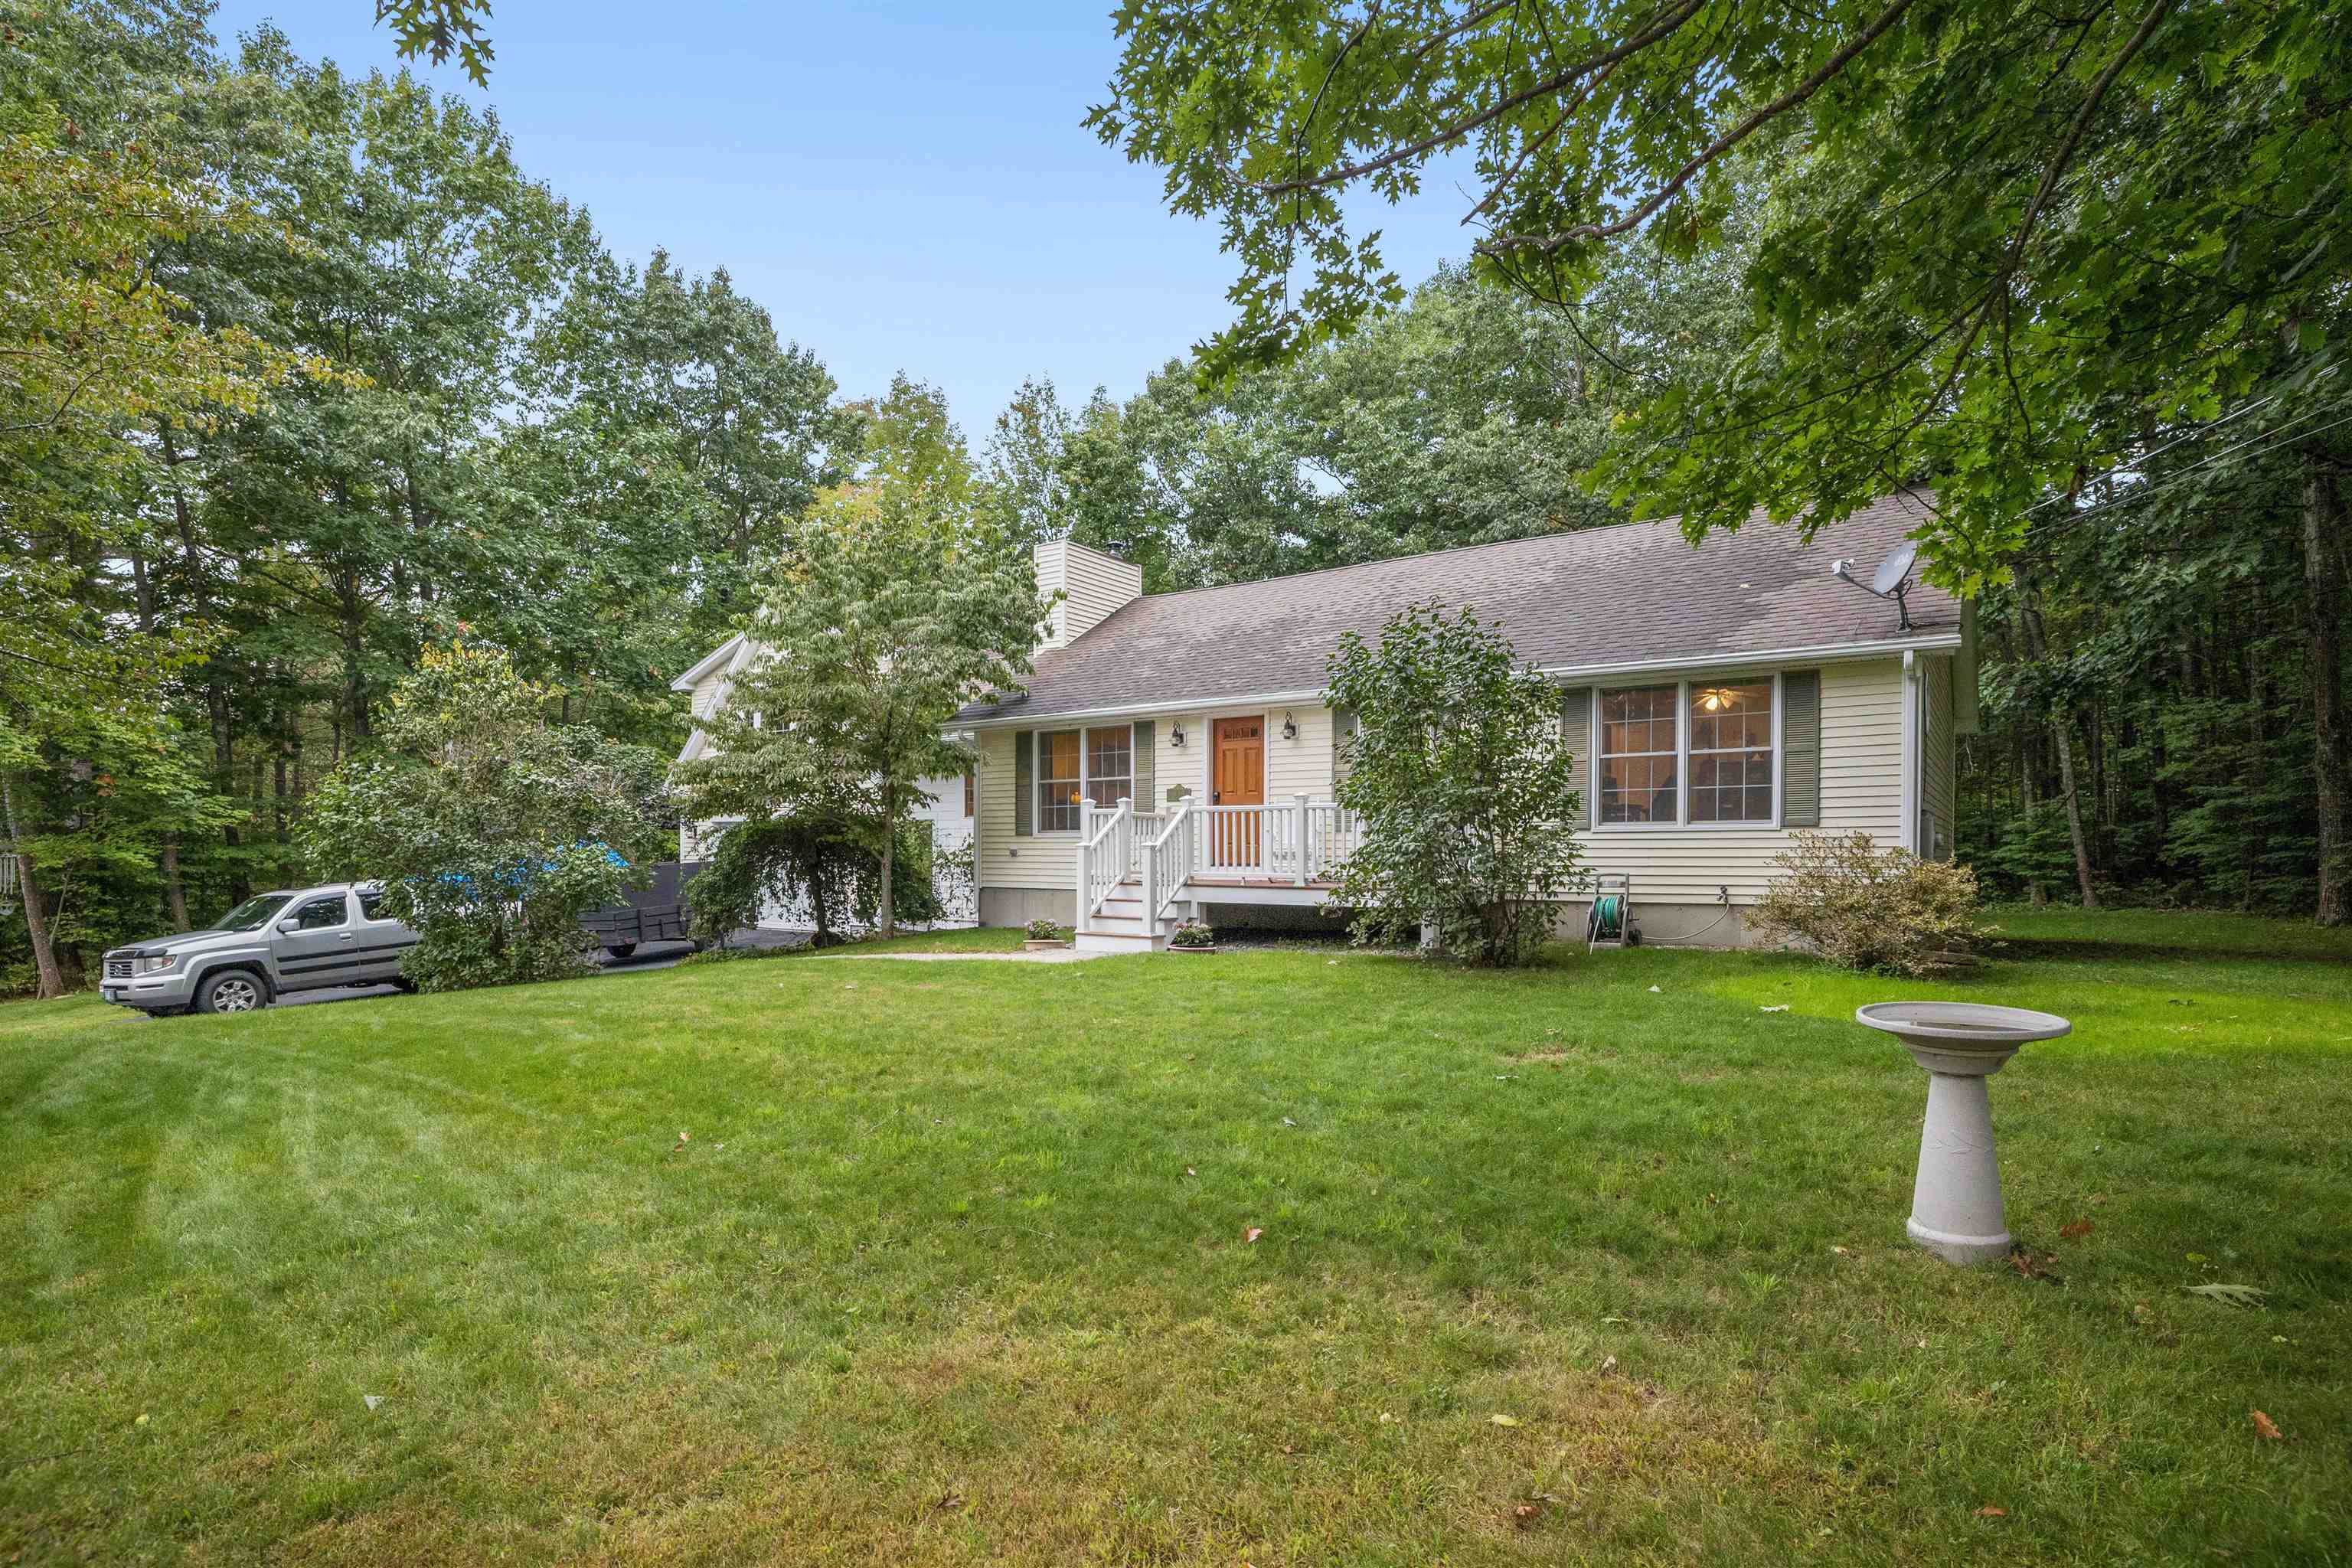 Photo of 85 Forest Road Wolfeboro NH 03894